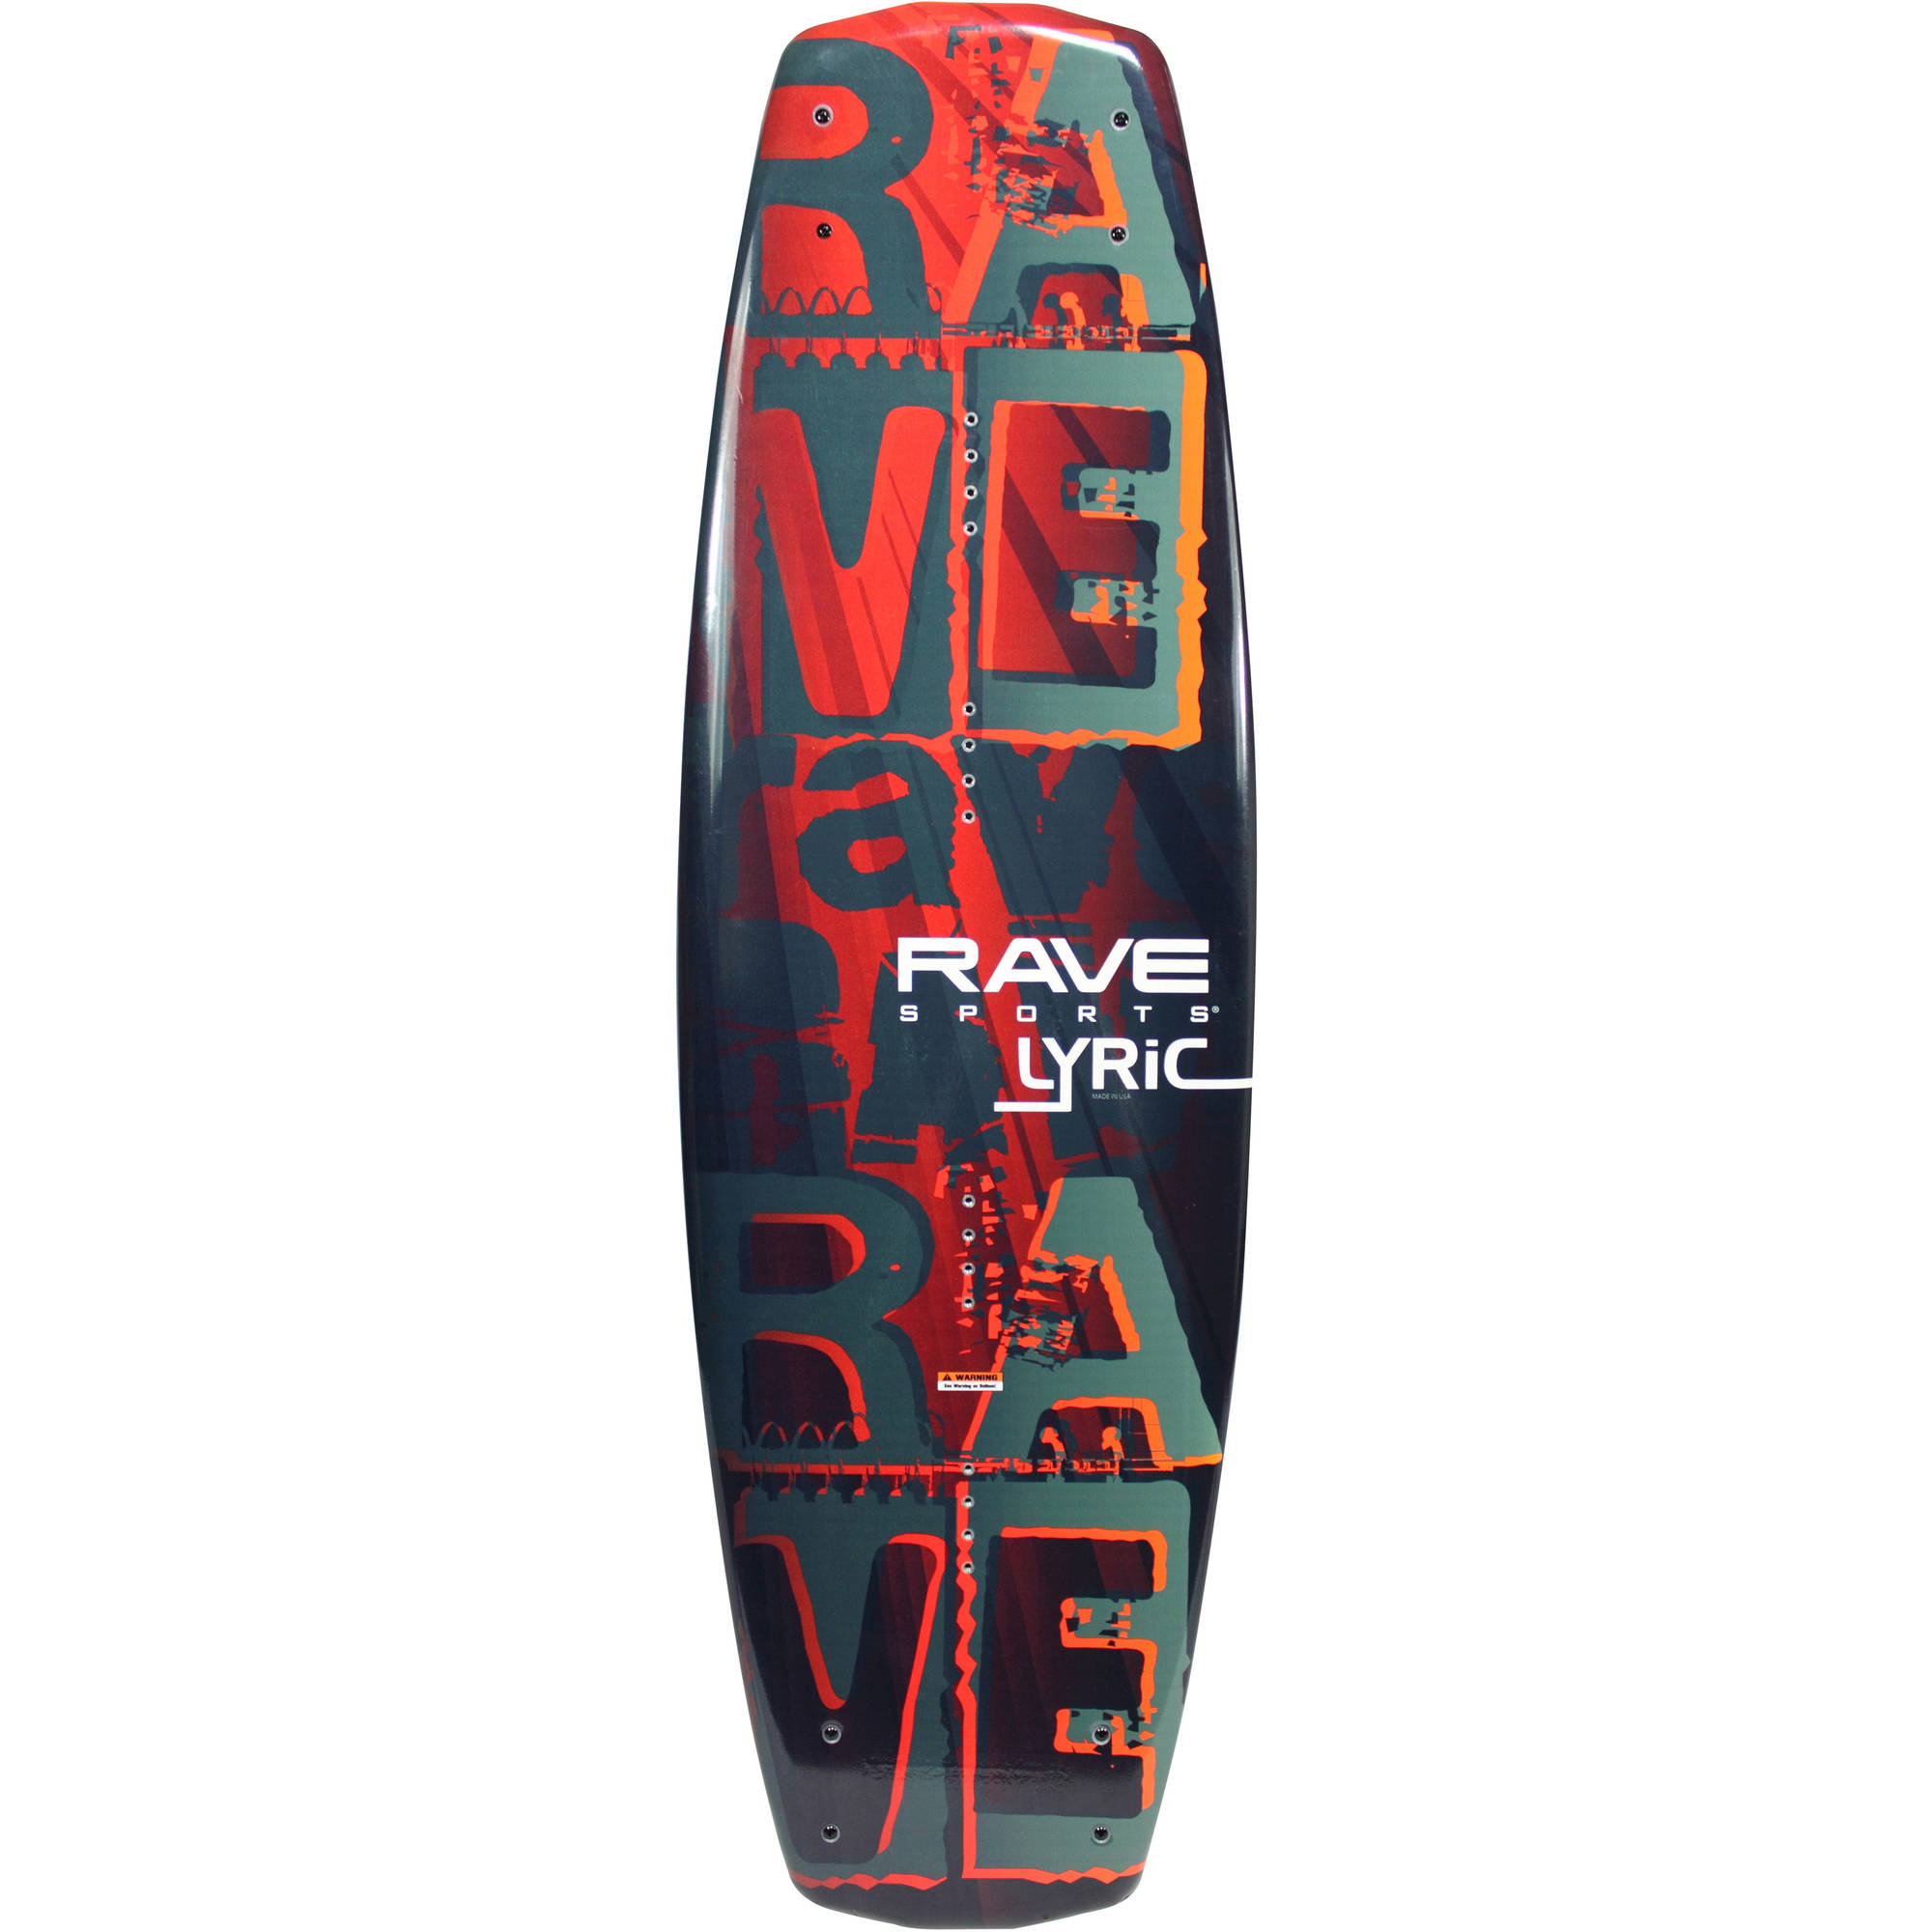 Rave Sports Lyric Wakeboard with Advantage Boots by Rave Sports